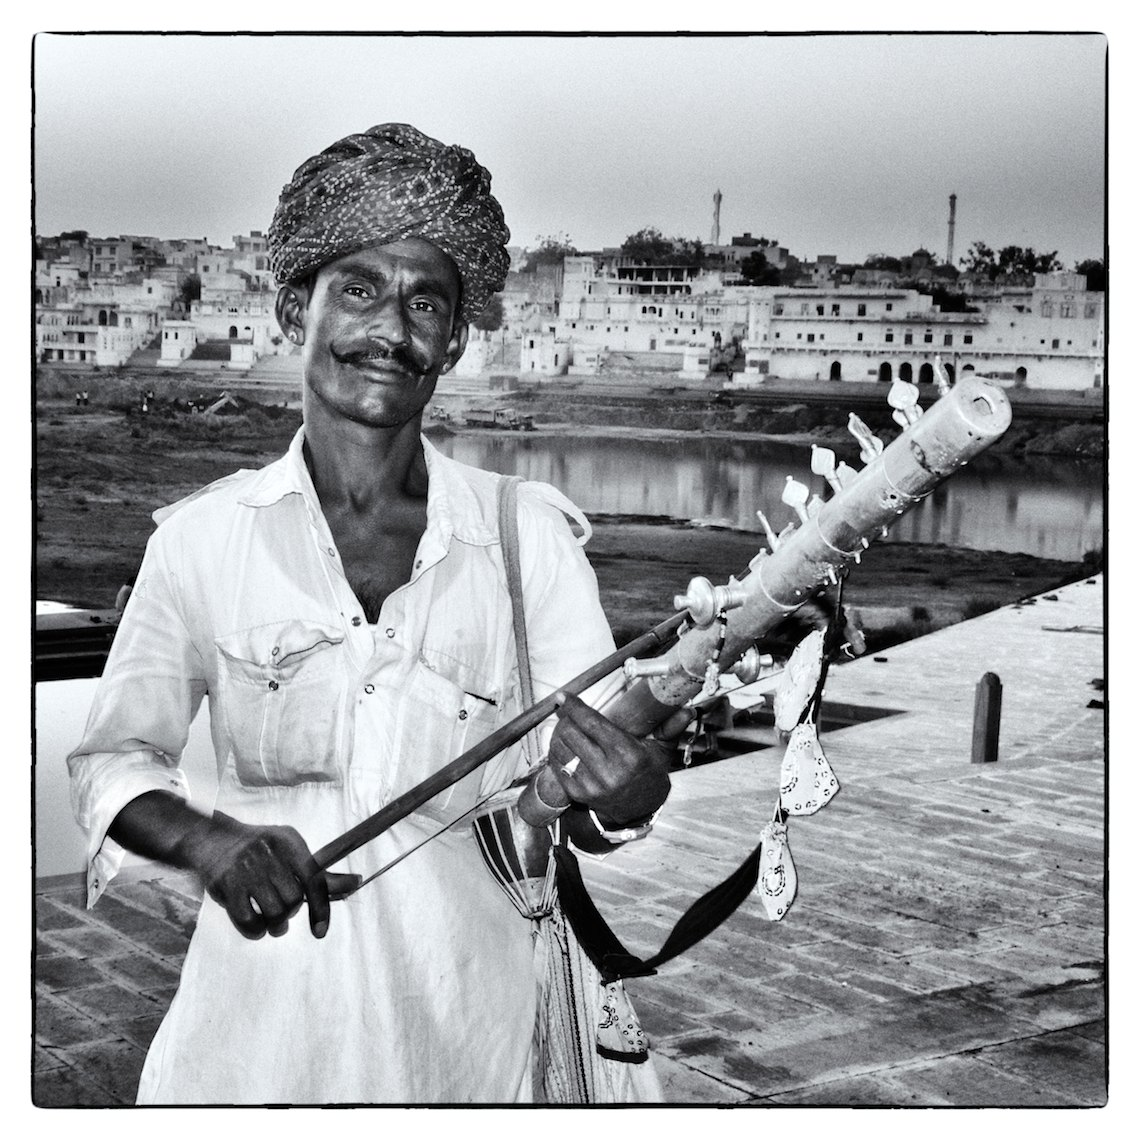 India Pushkar musician portrait